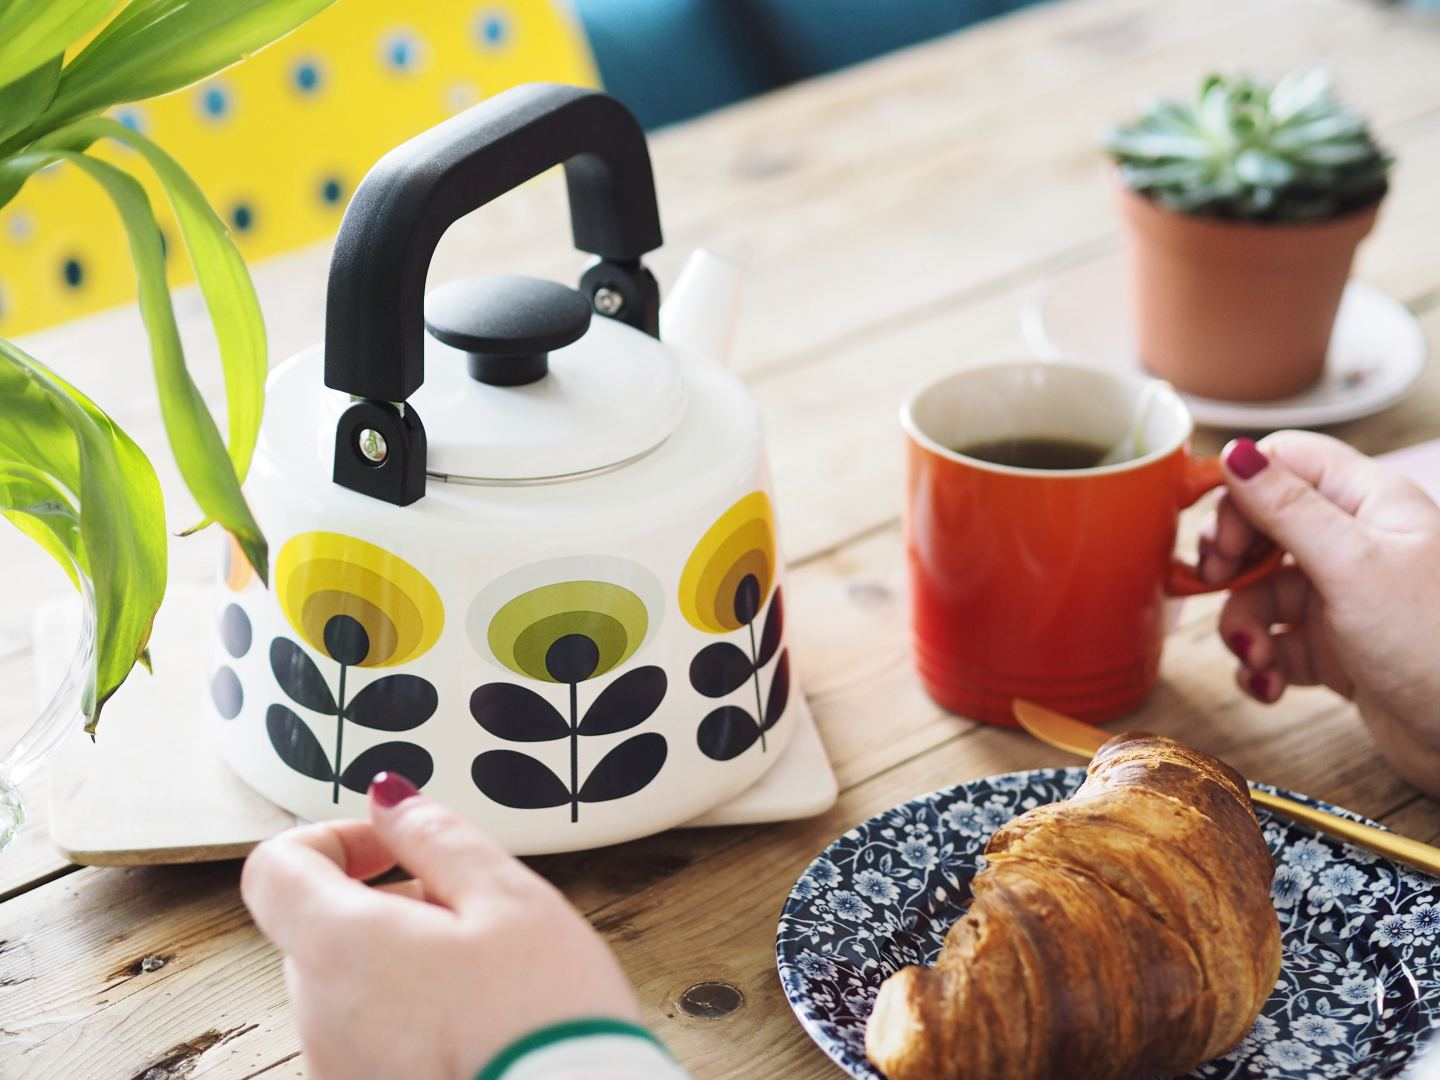 orla kiely teapot retro 1970s colourful home interiors blog blogger